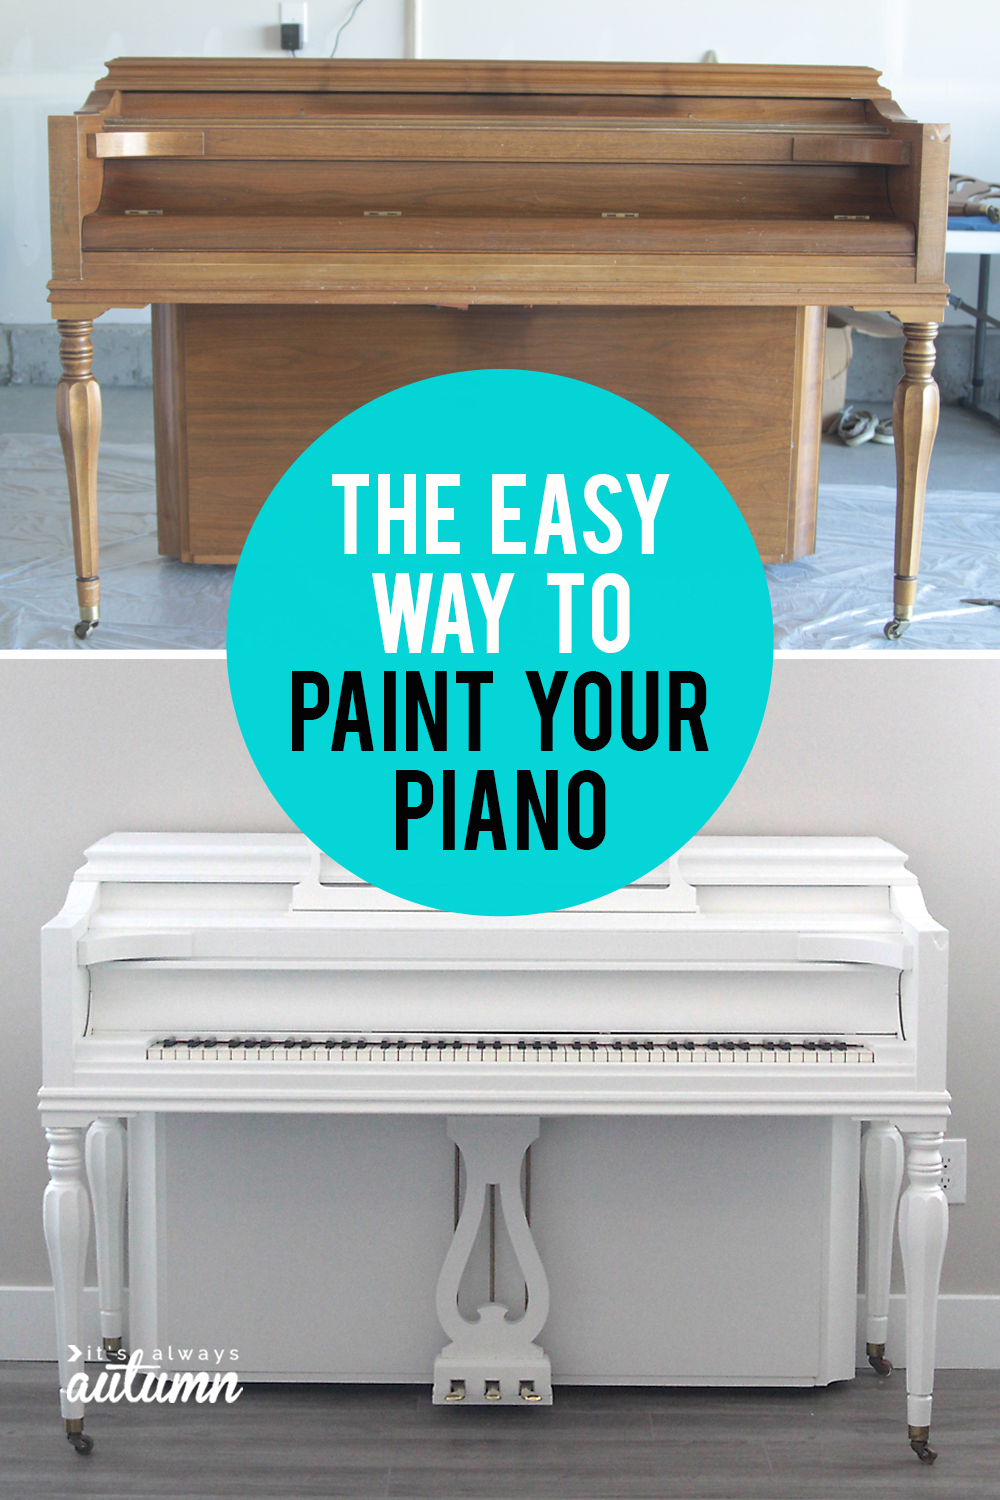 How to paint your piano - the easy way! Step by step instructions for painting a piano to match your decor.